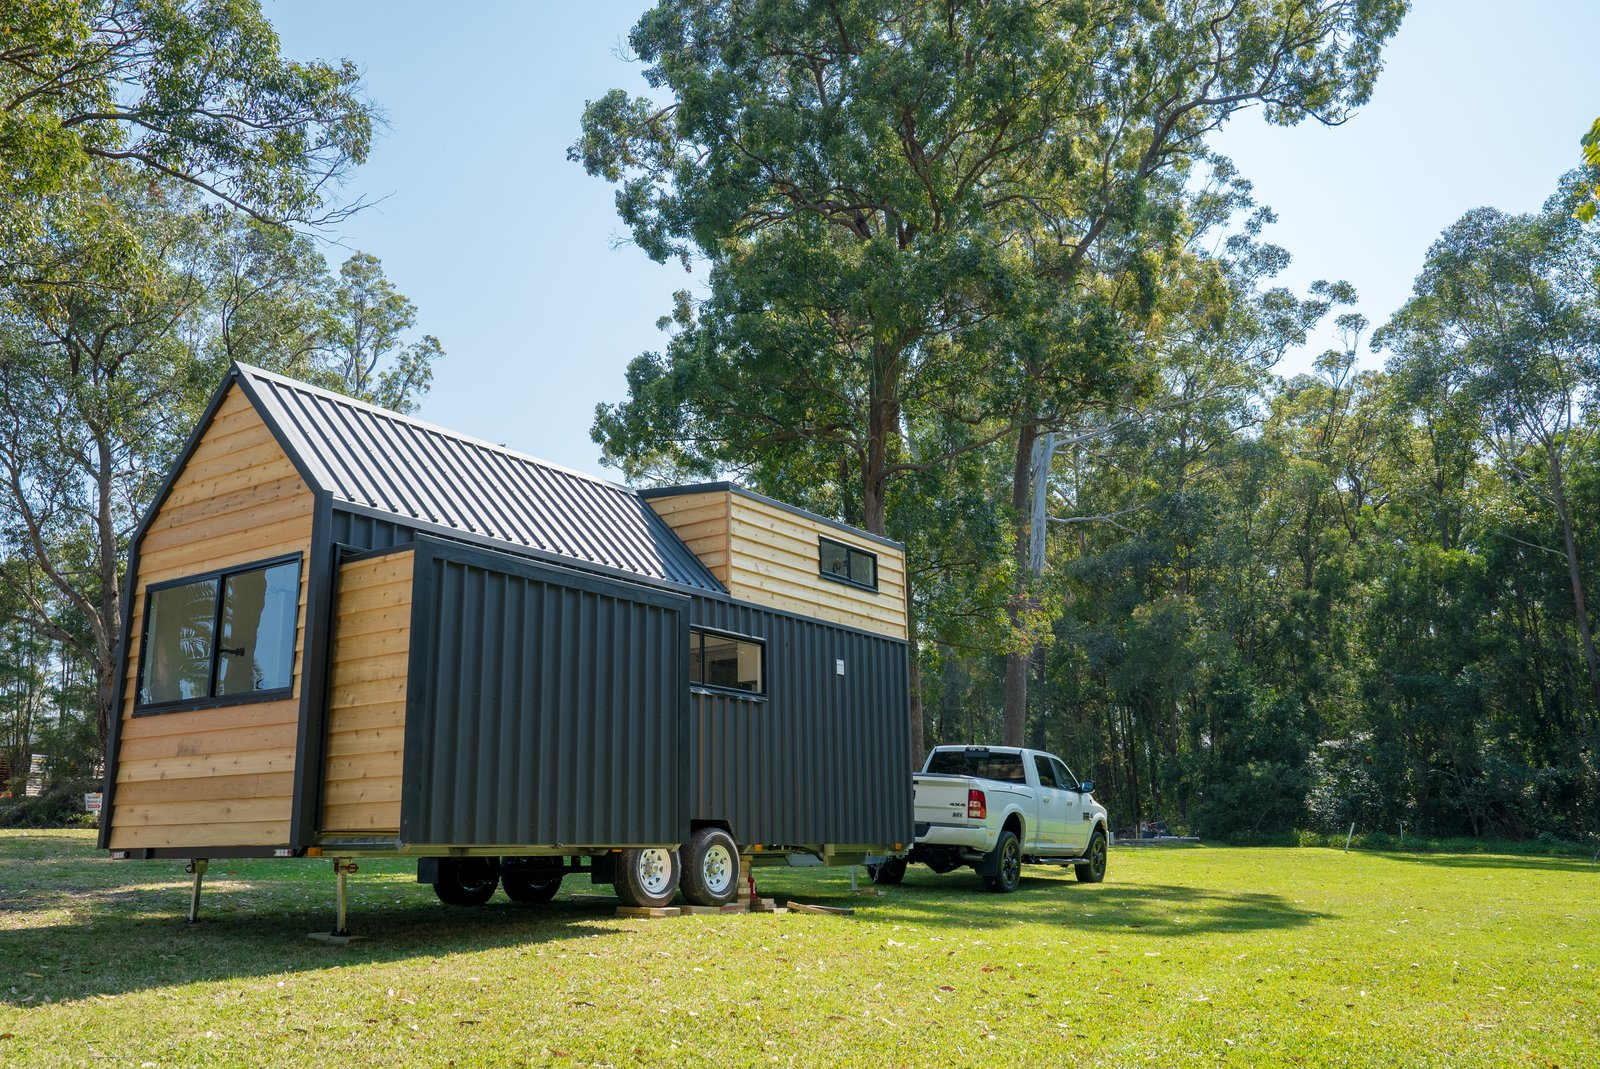 Sojourner tiny home slideout